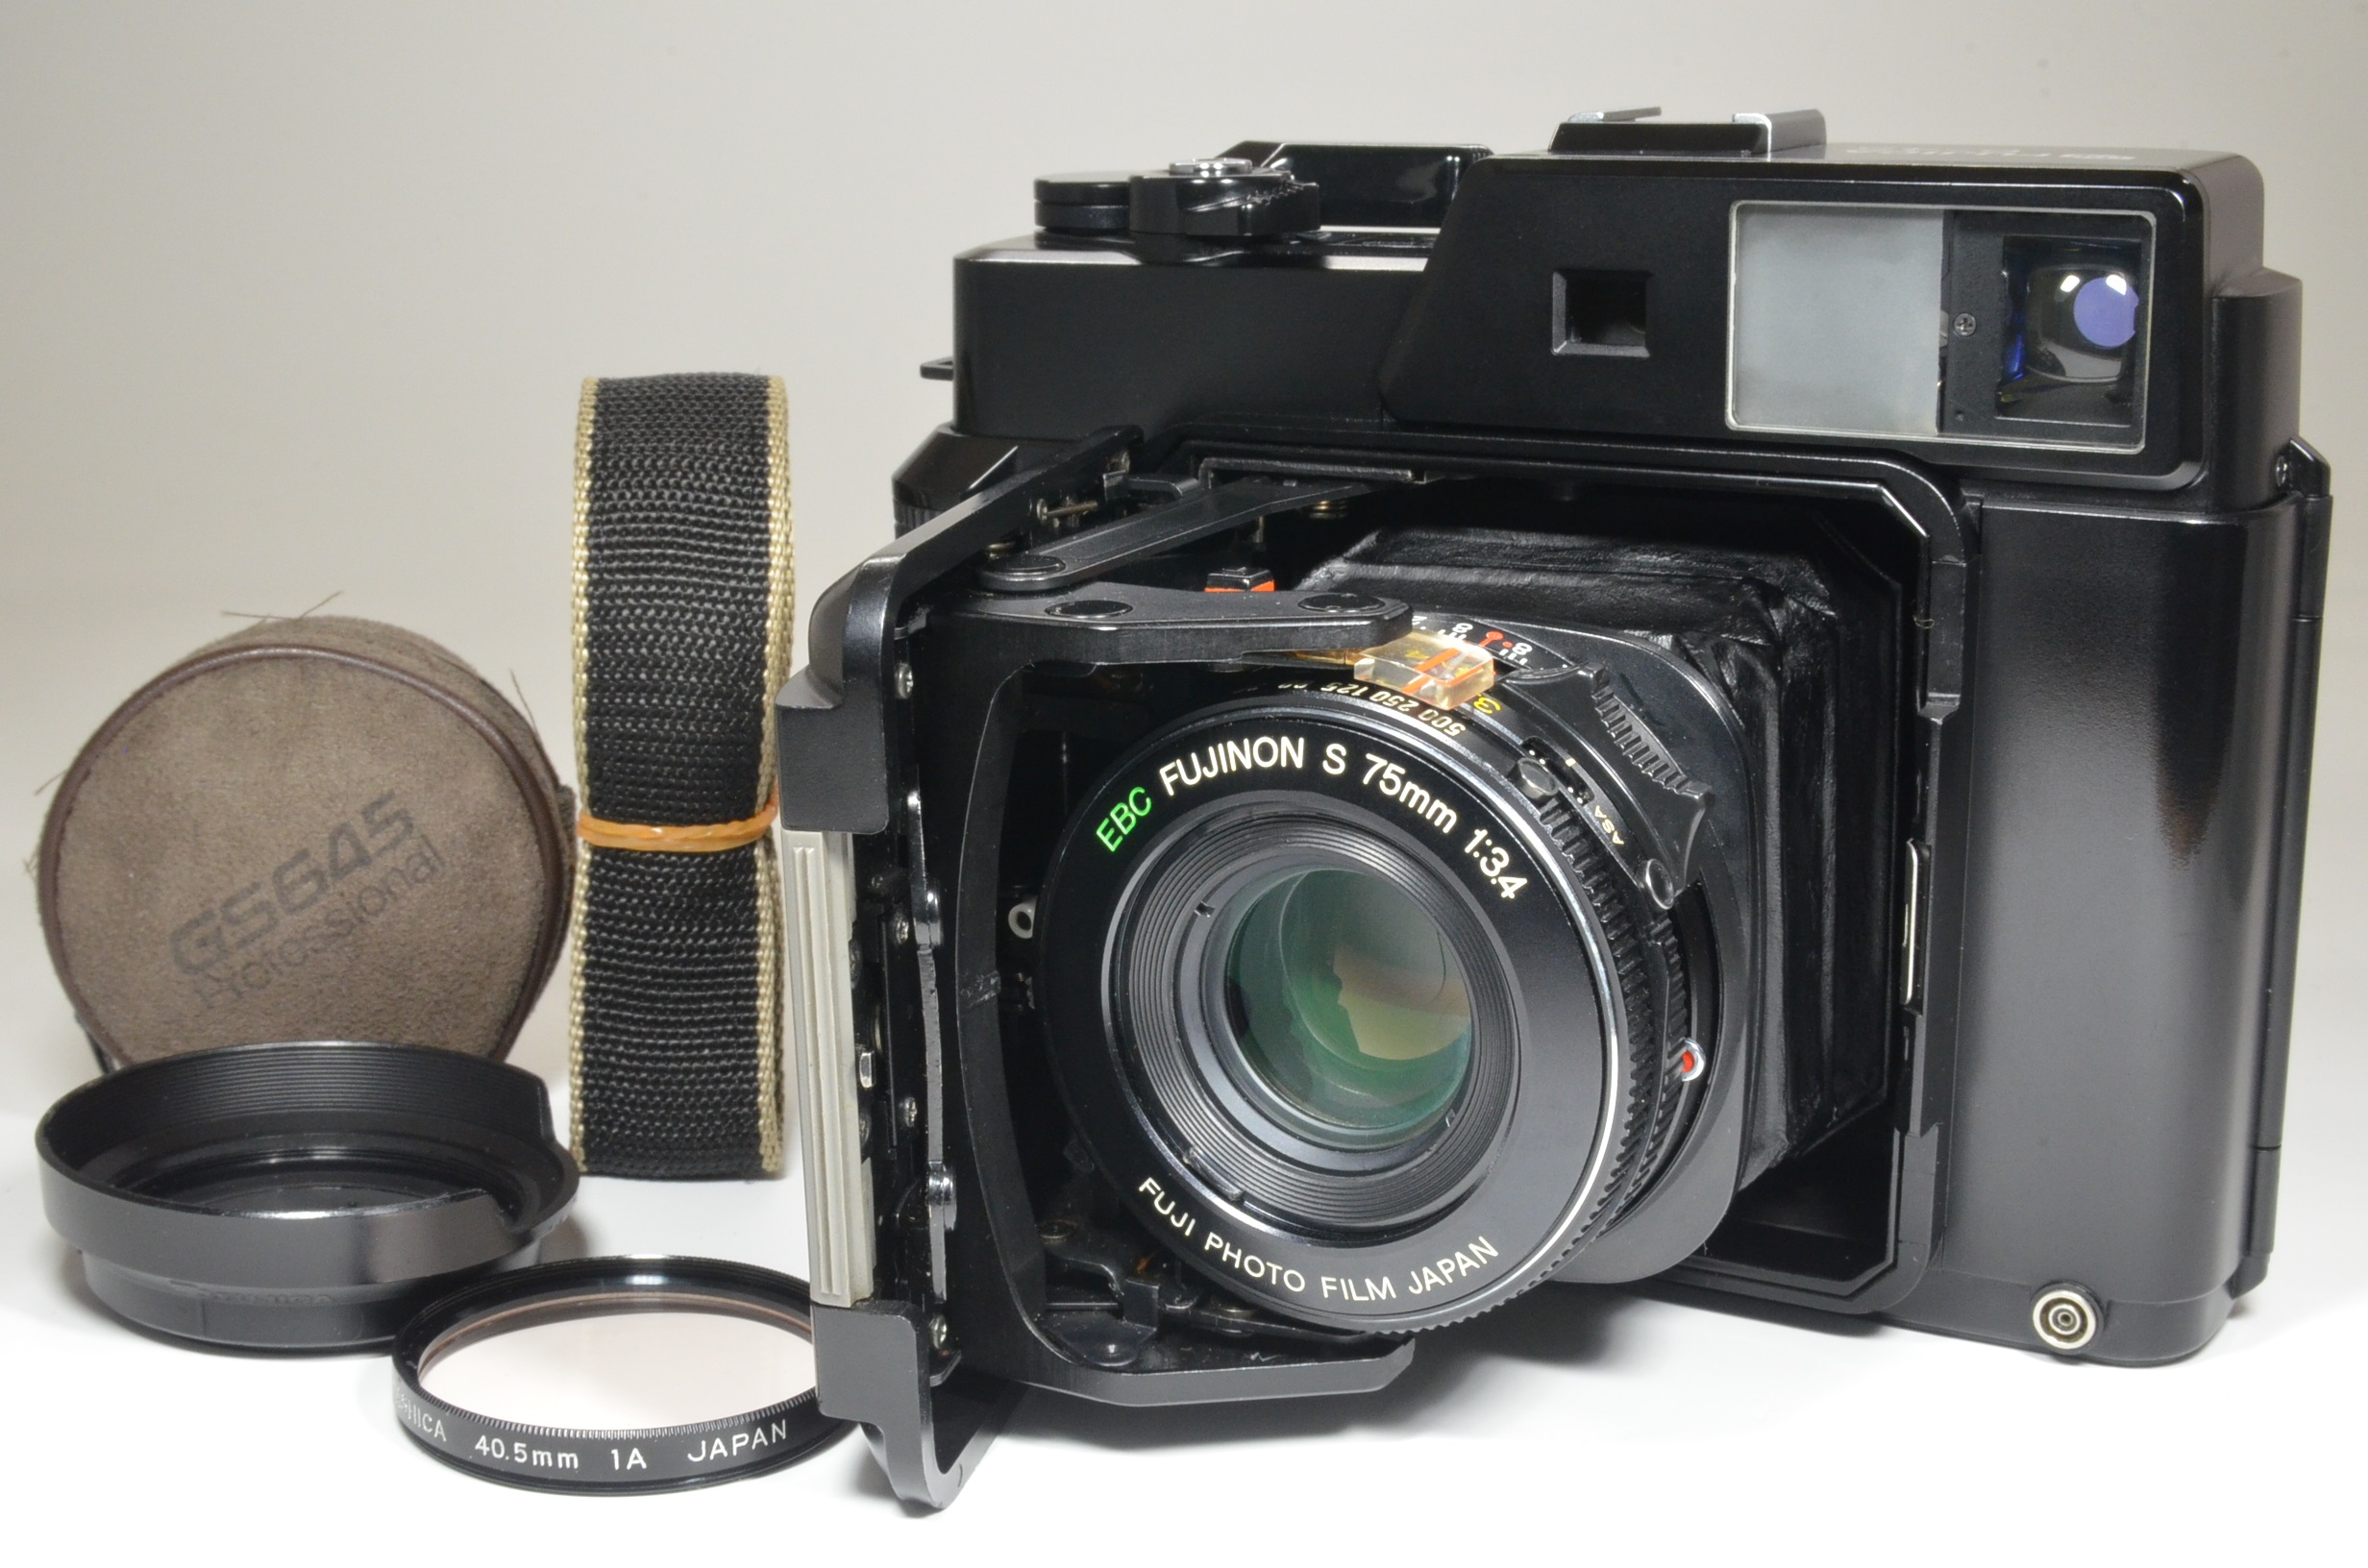 fujifilm fujica gs645 camera 75mm f3.4 with lens hood